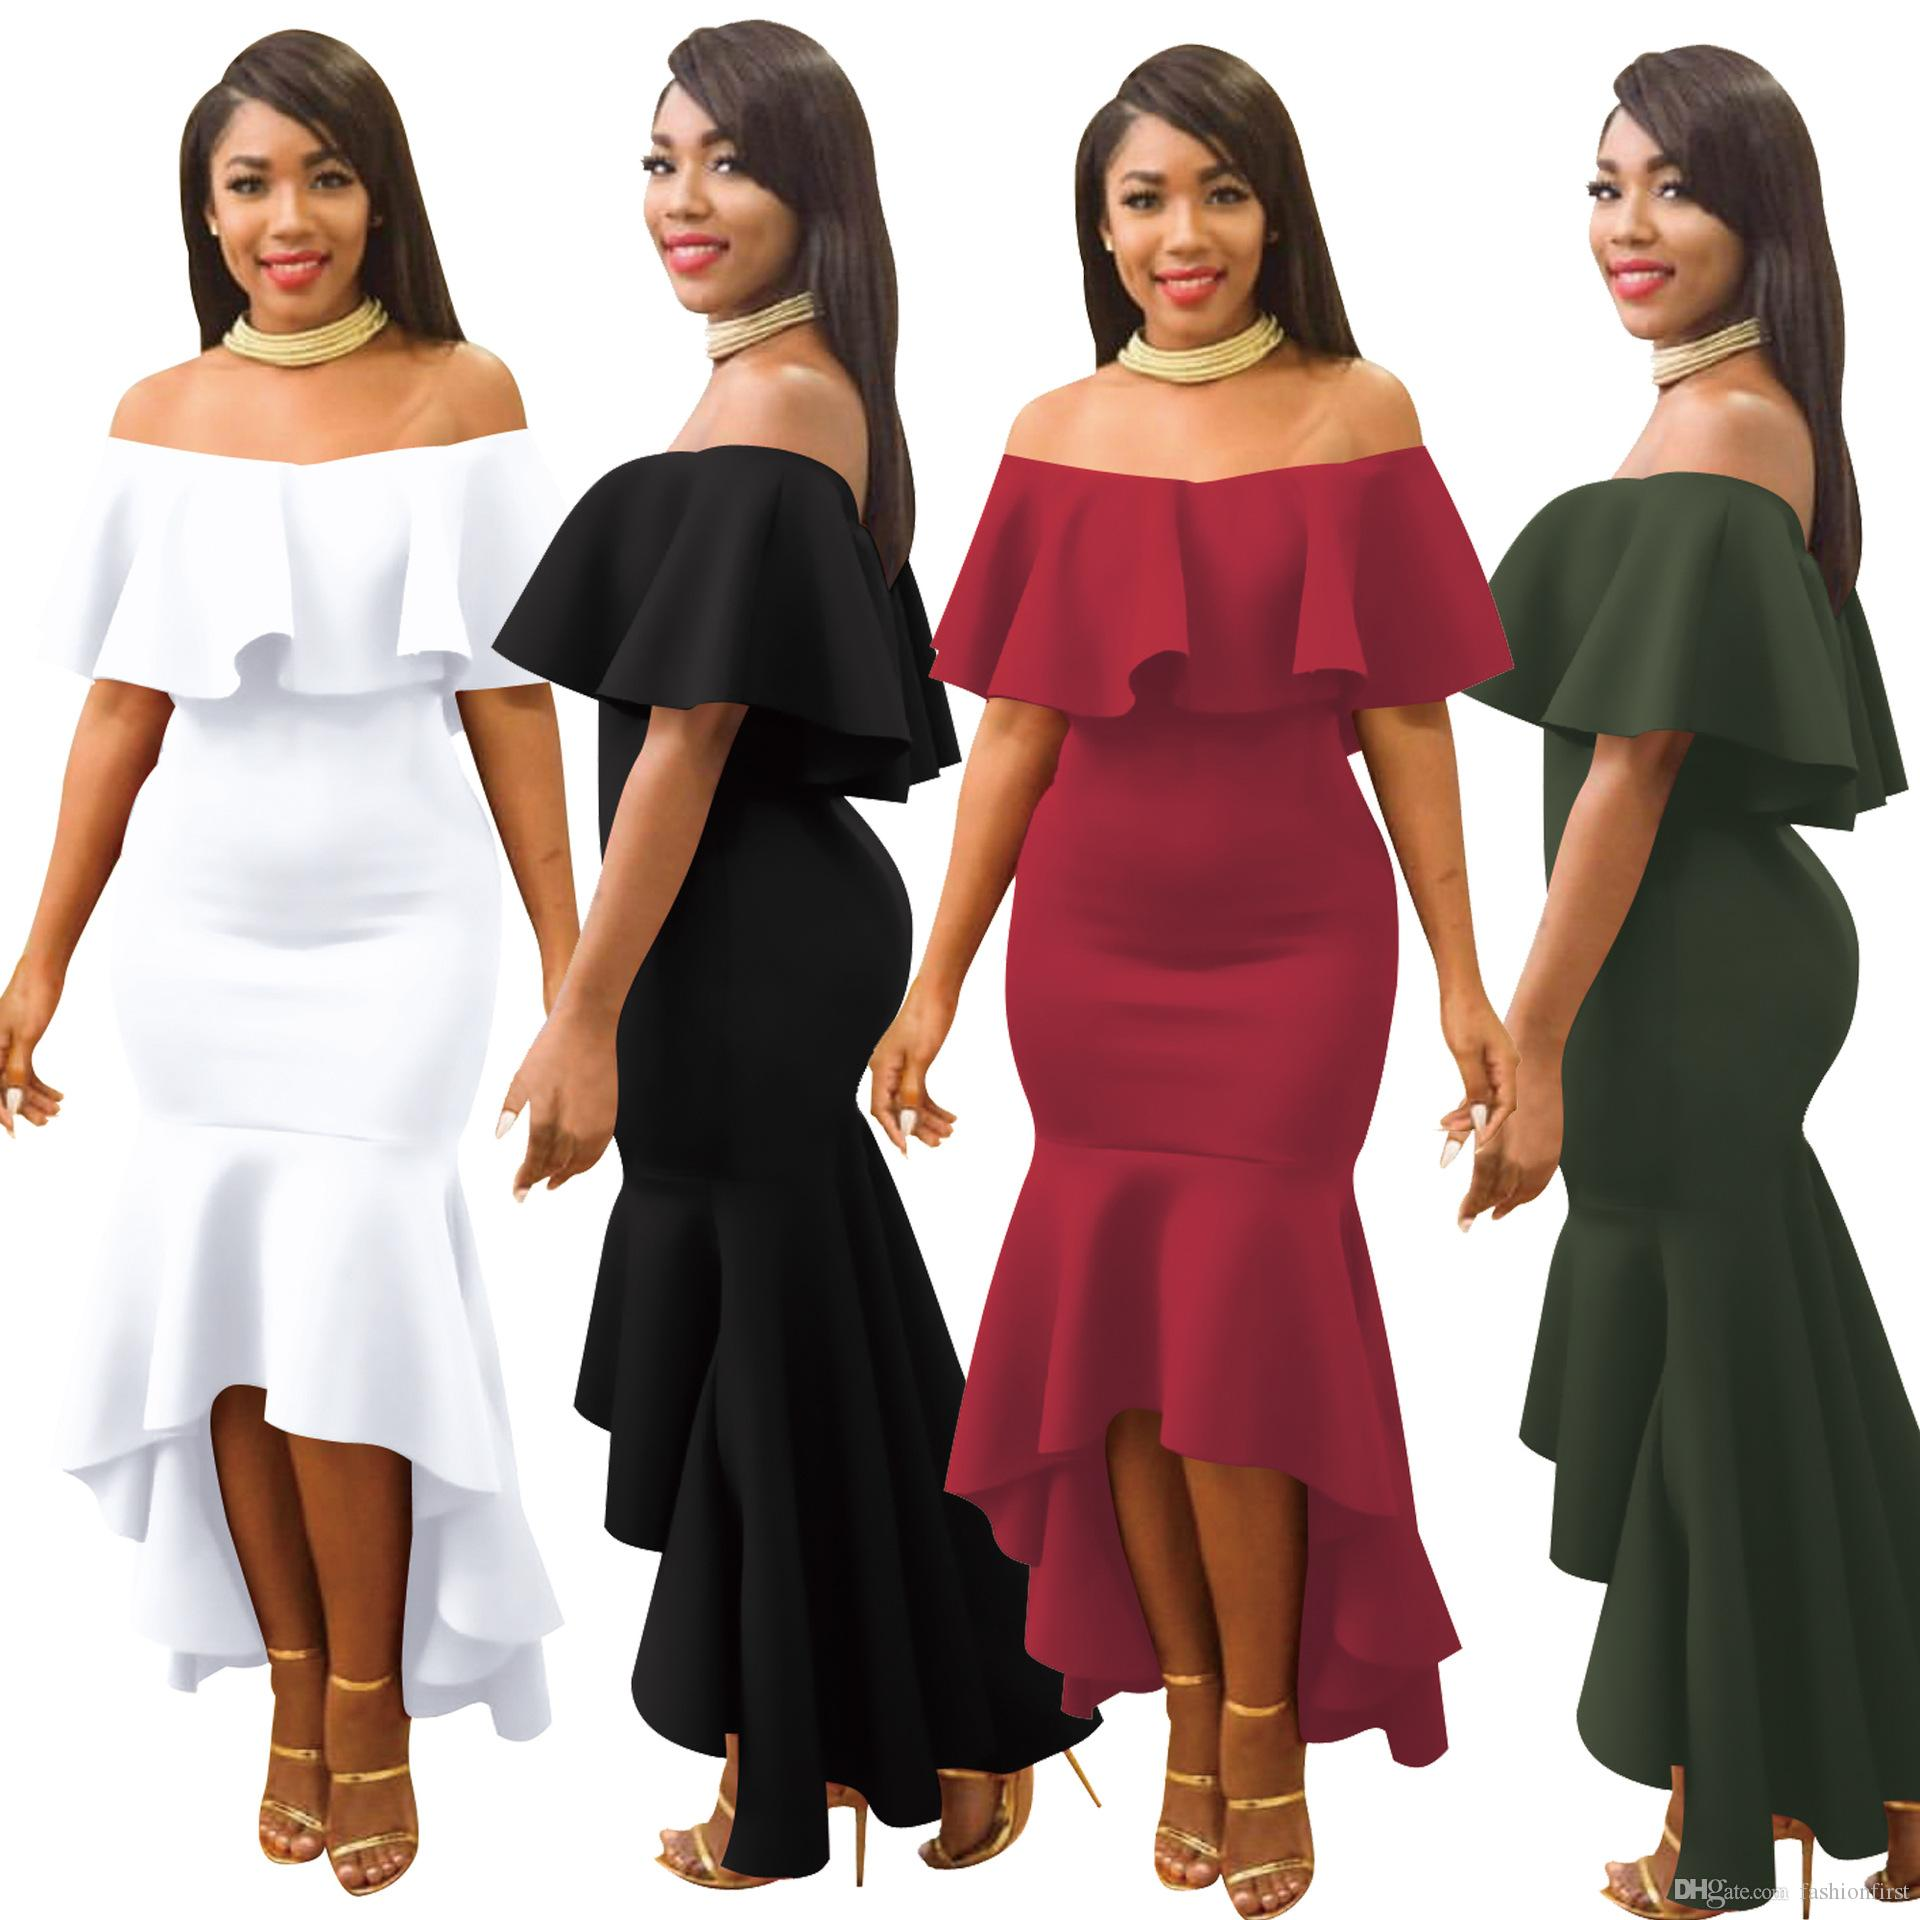 13c8ceda3600 Women Ruffle Off Shoulder Dress Elegant Wine Red Army Green Party Ruffled  Dress Romantic Urban Boho Dress Sequin Dresses Sweater Dresses From  Fashionfirst